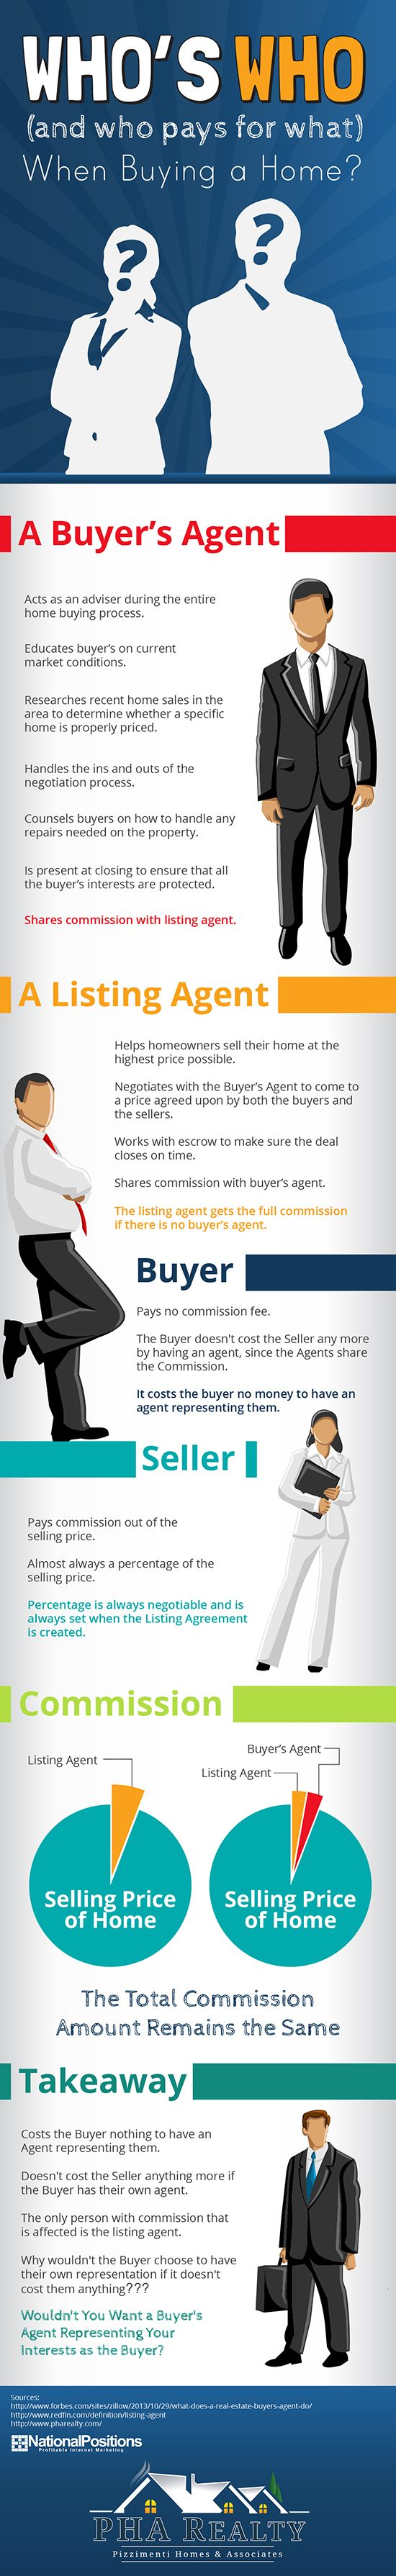 The differences between a buyer's agent and a listing agent.